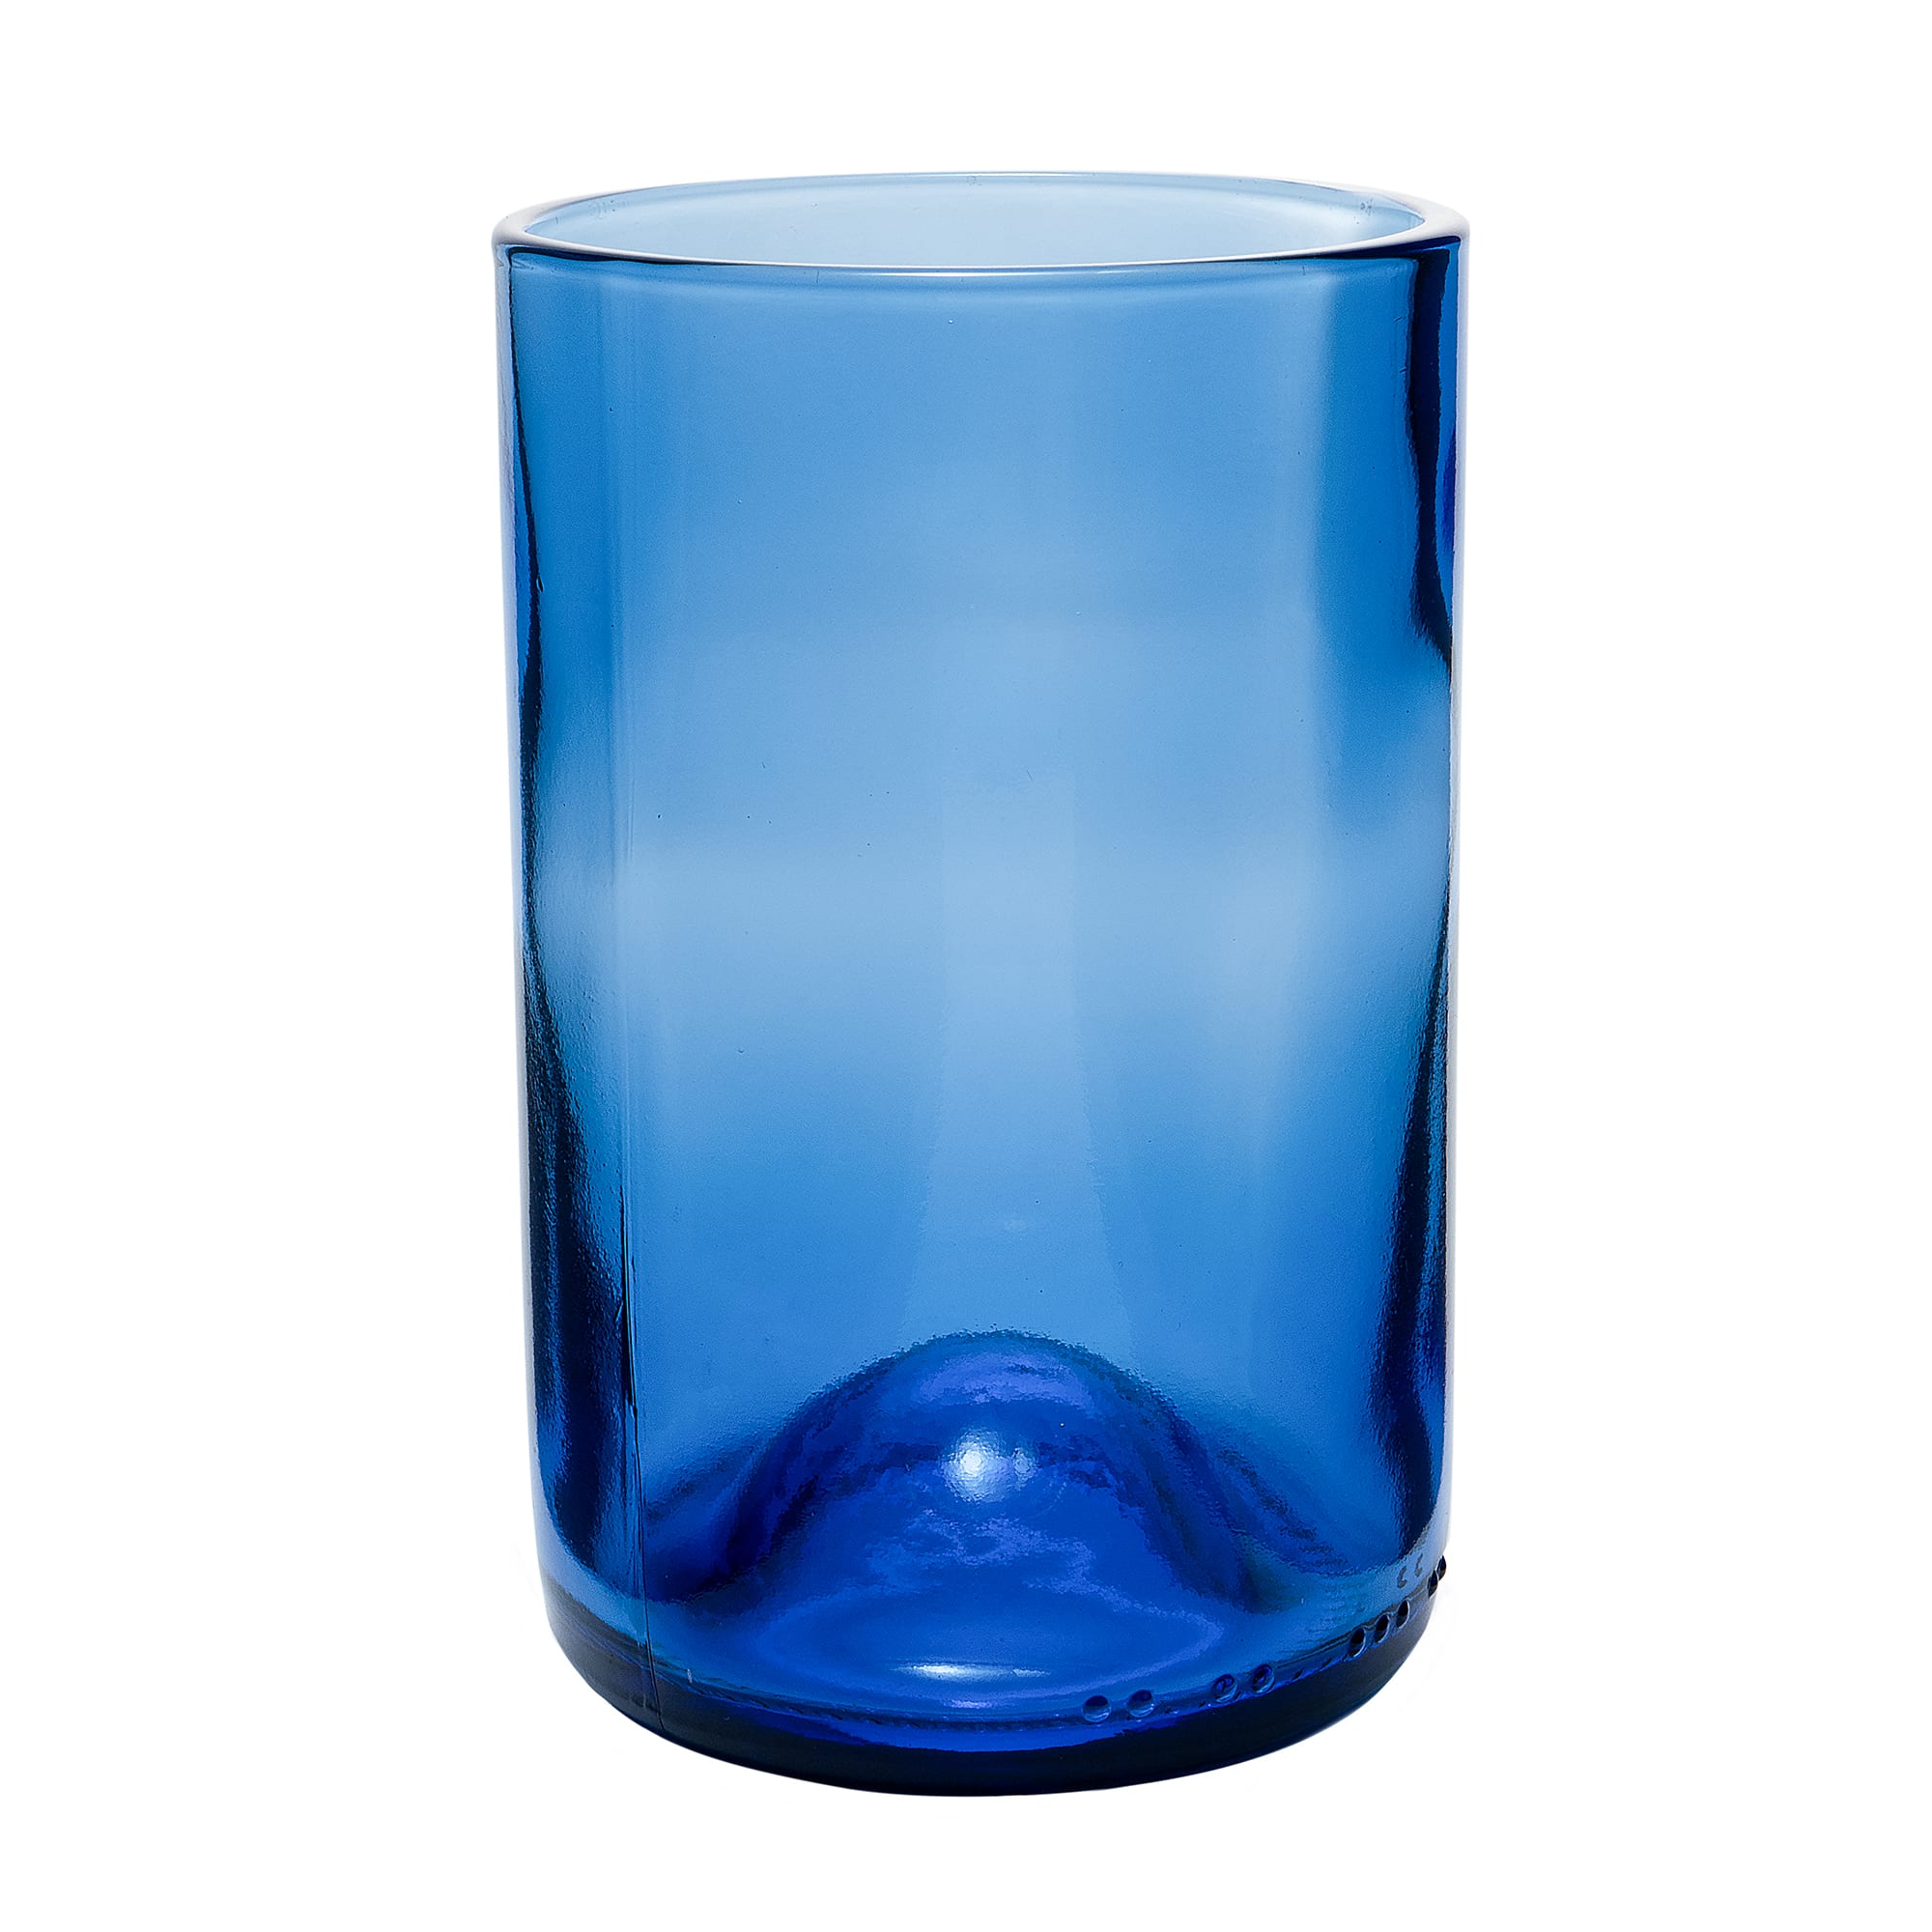 Libbey 97285 12 oz Double Old Fashioned Glass, Blue